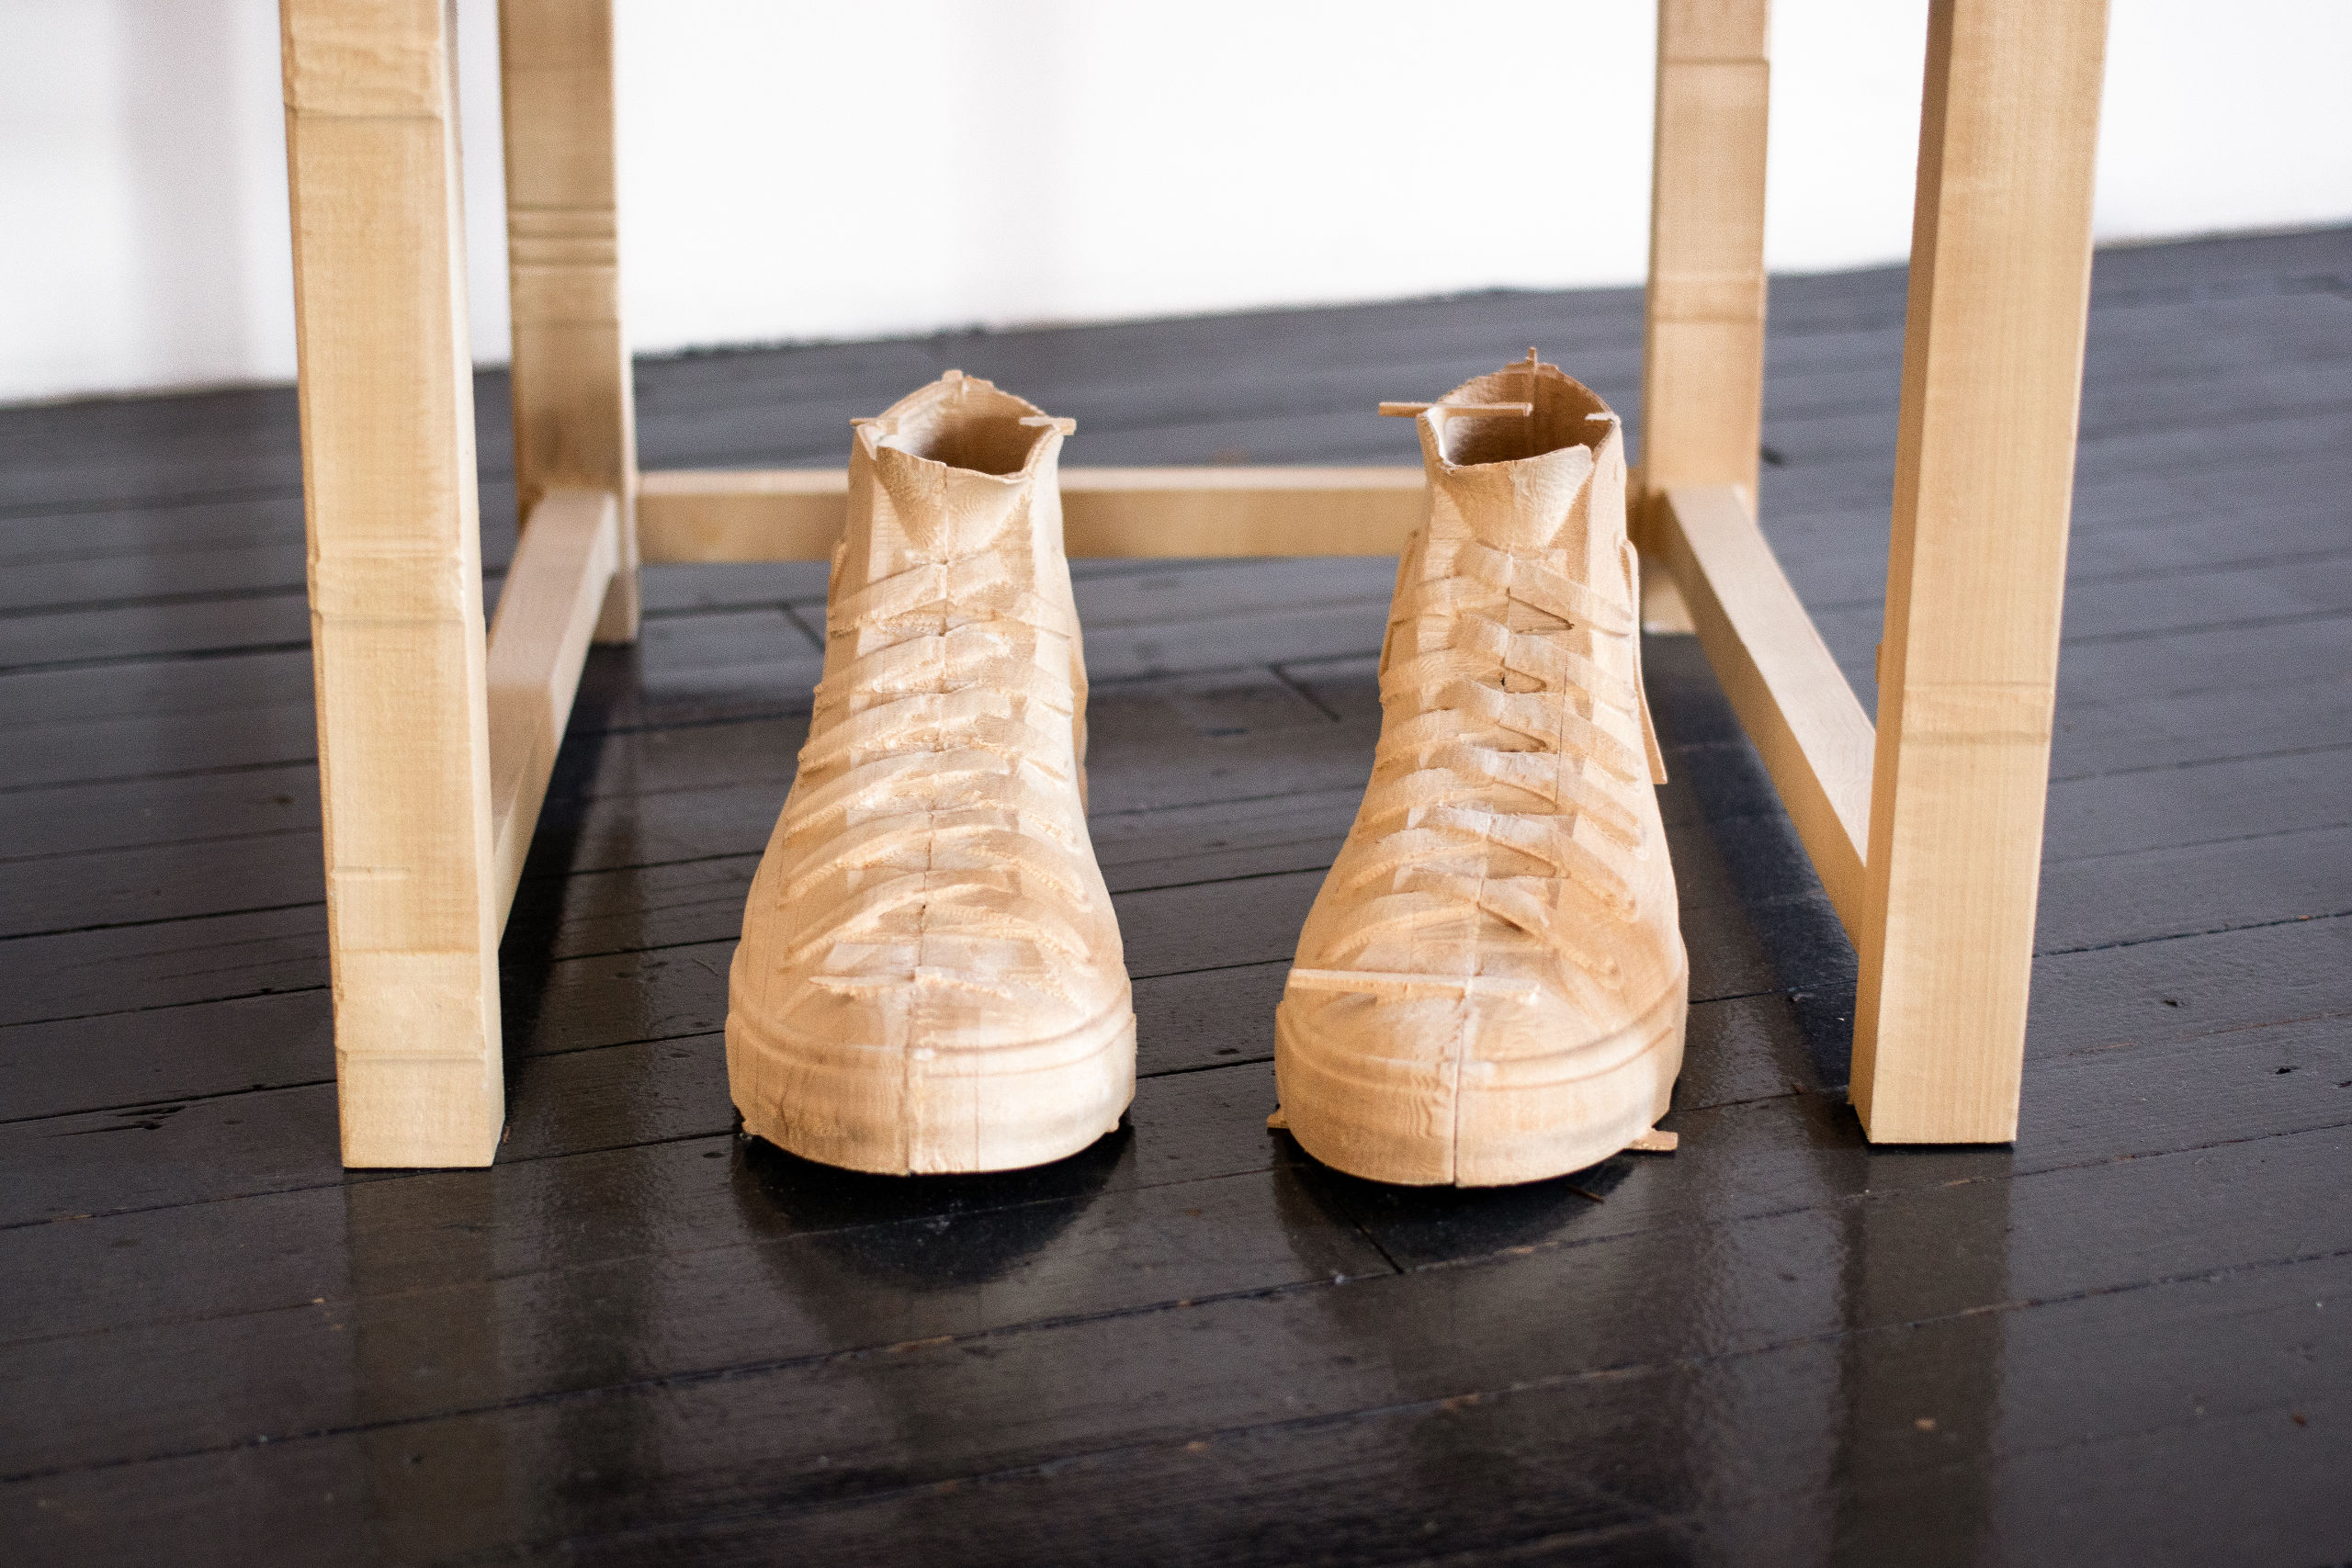 Wood sculpture of empty sneakers in front of a chair.